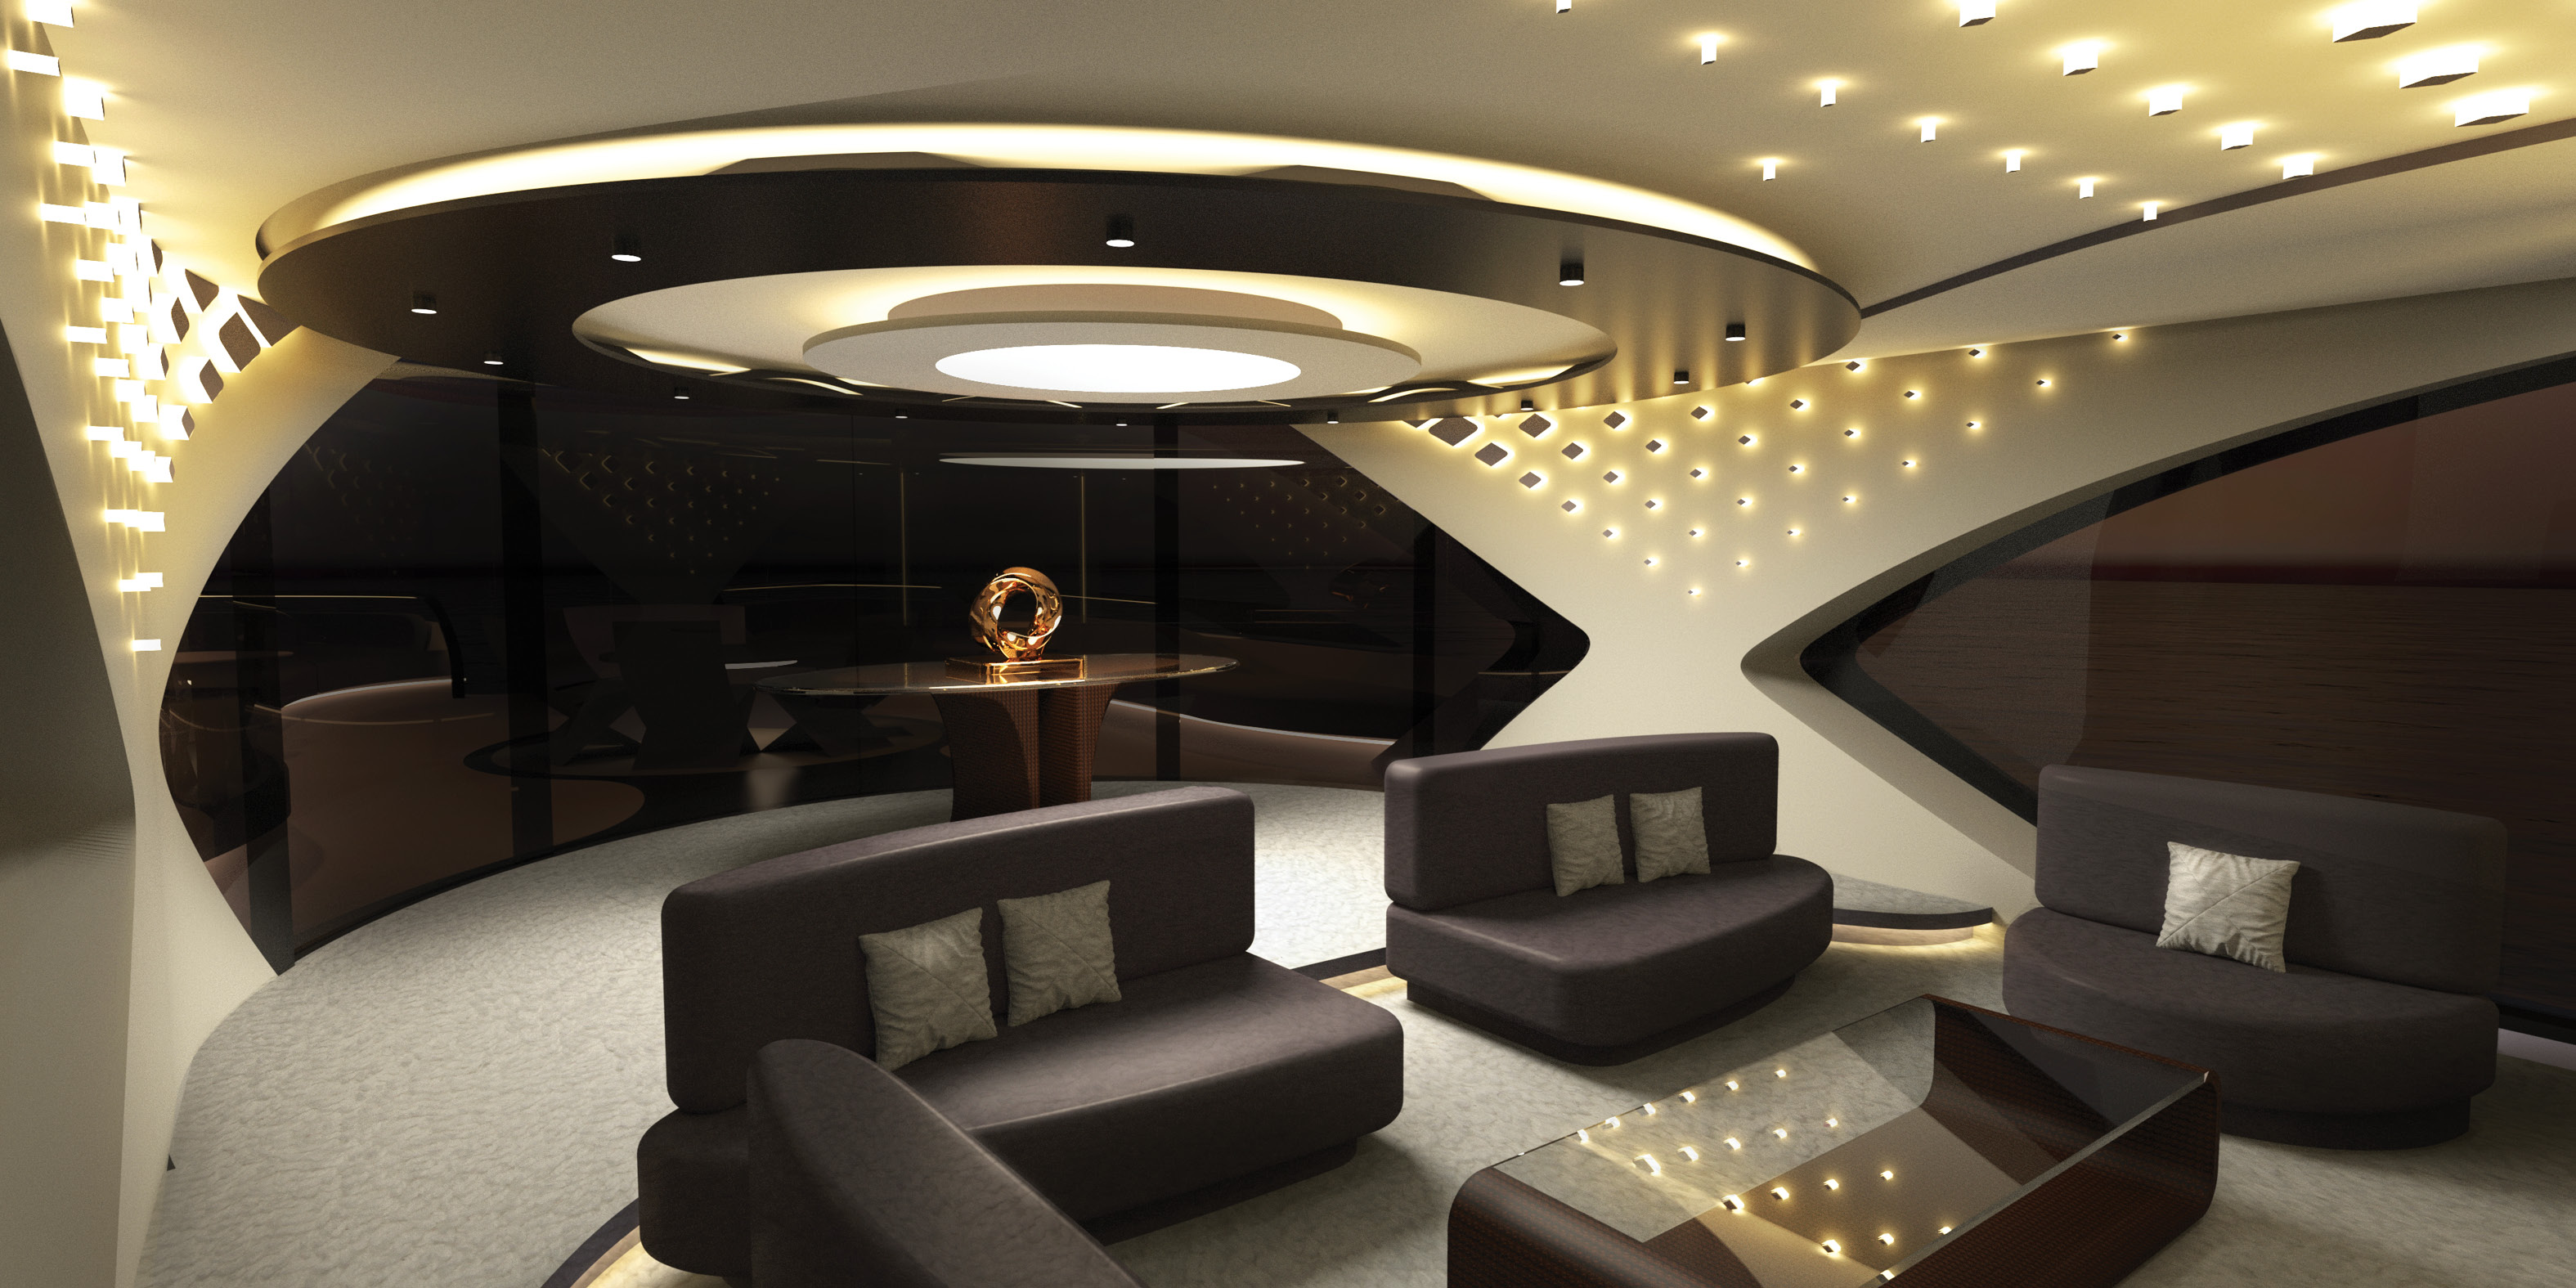 Saloon and Dining - Interior Accommodation - Luxury Superyacht concept CERCIO designed by Baoqi Xiao